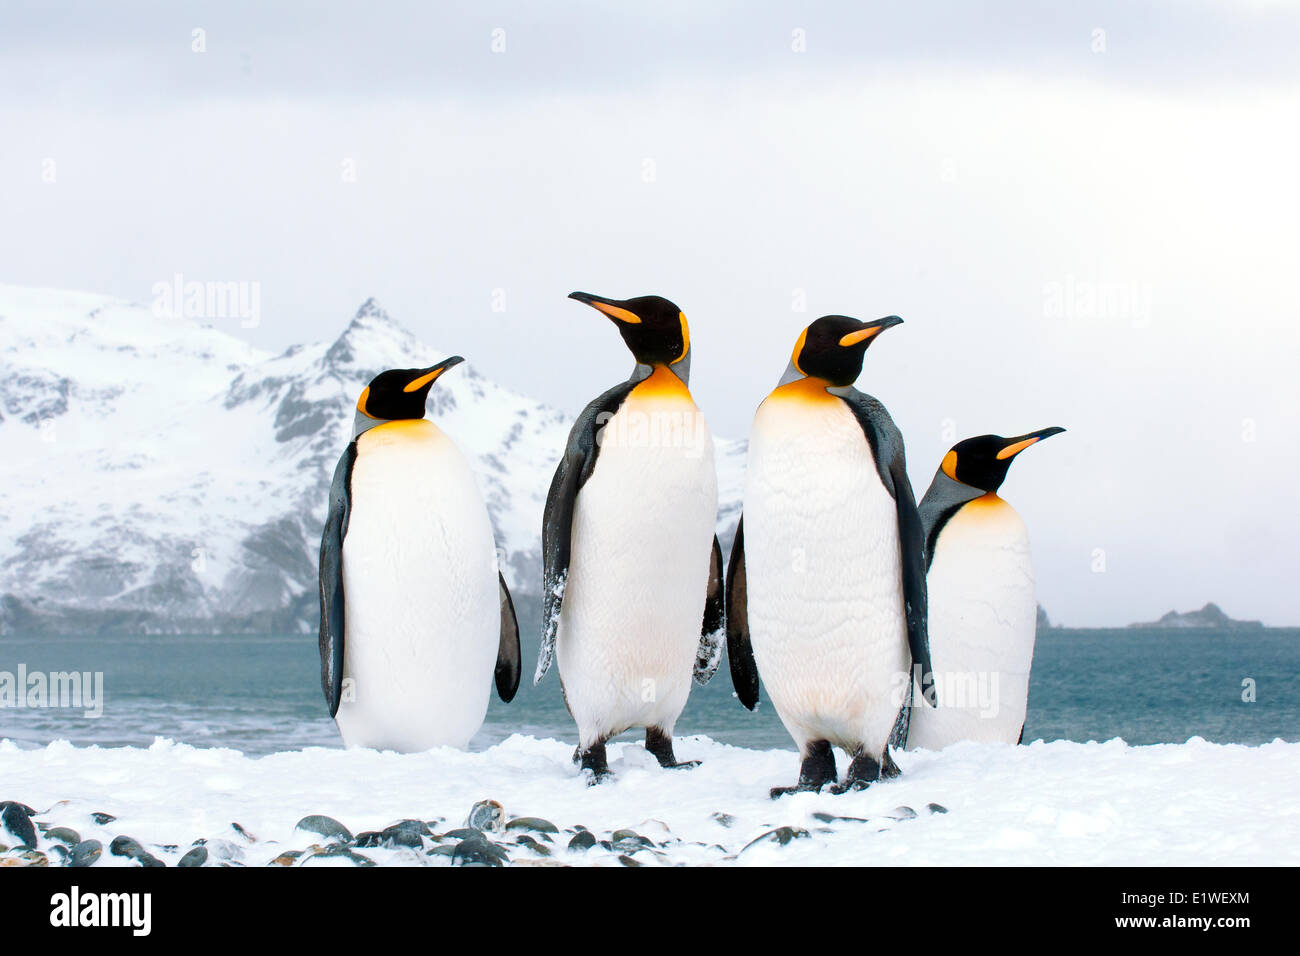 King penguins (Aptenodytes patagonicus) loafing on the beach, Island of South Georgia, Antarctica - Stock Image